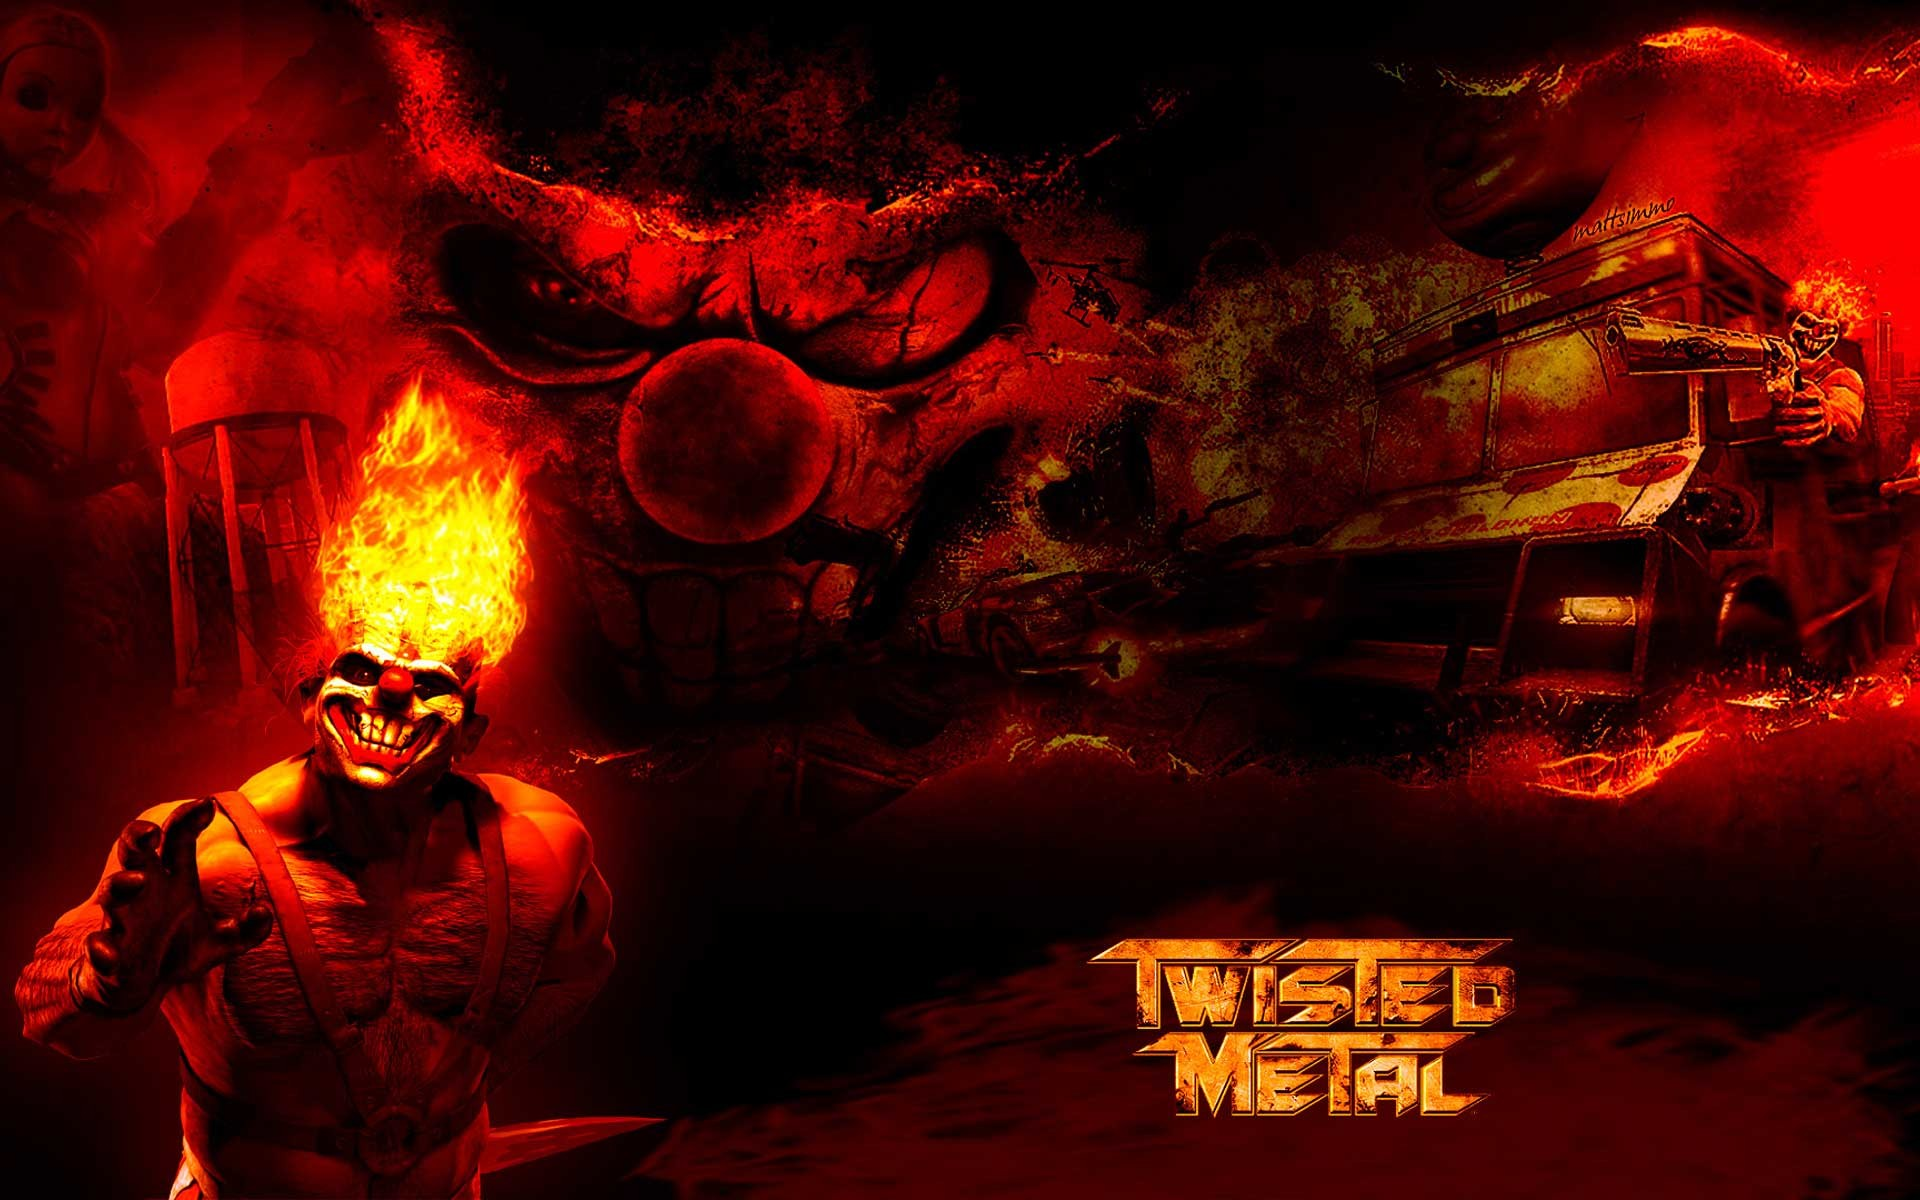 1920x1200 Twisted Metal Black Wallpapers Ps Ign 1024x768PX ~ Twisted Metal .